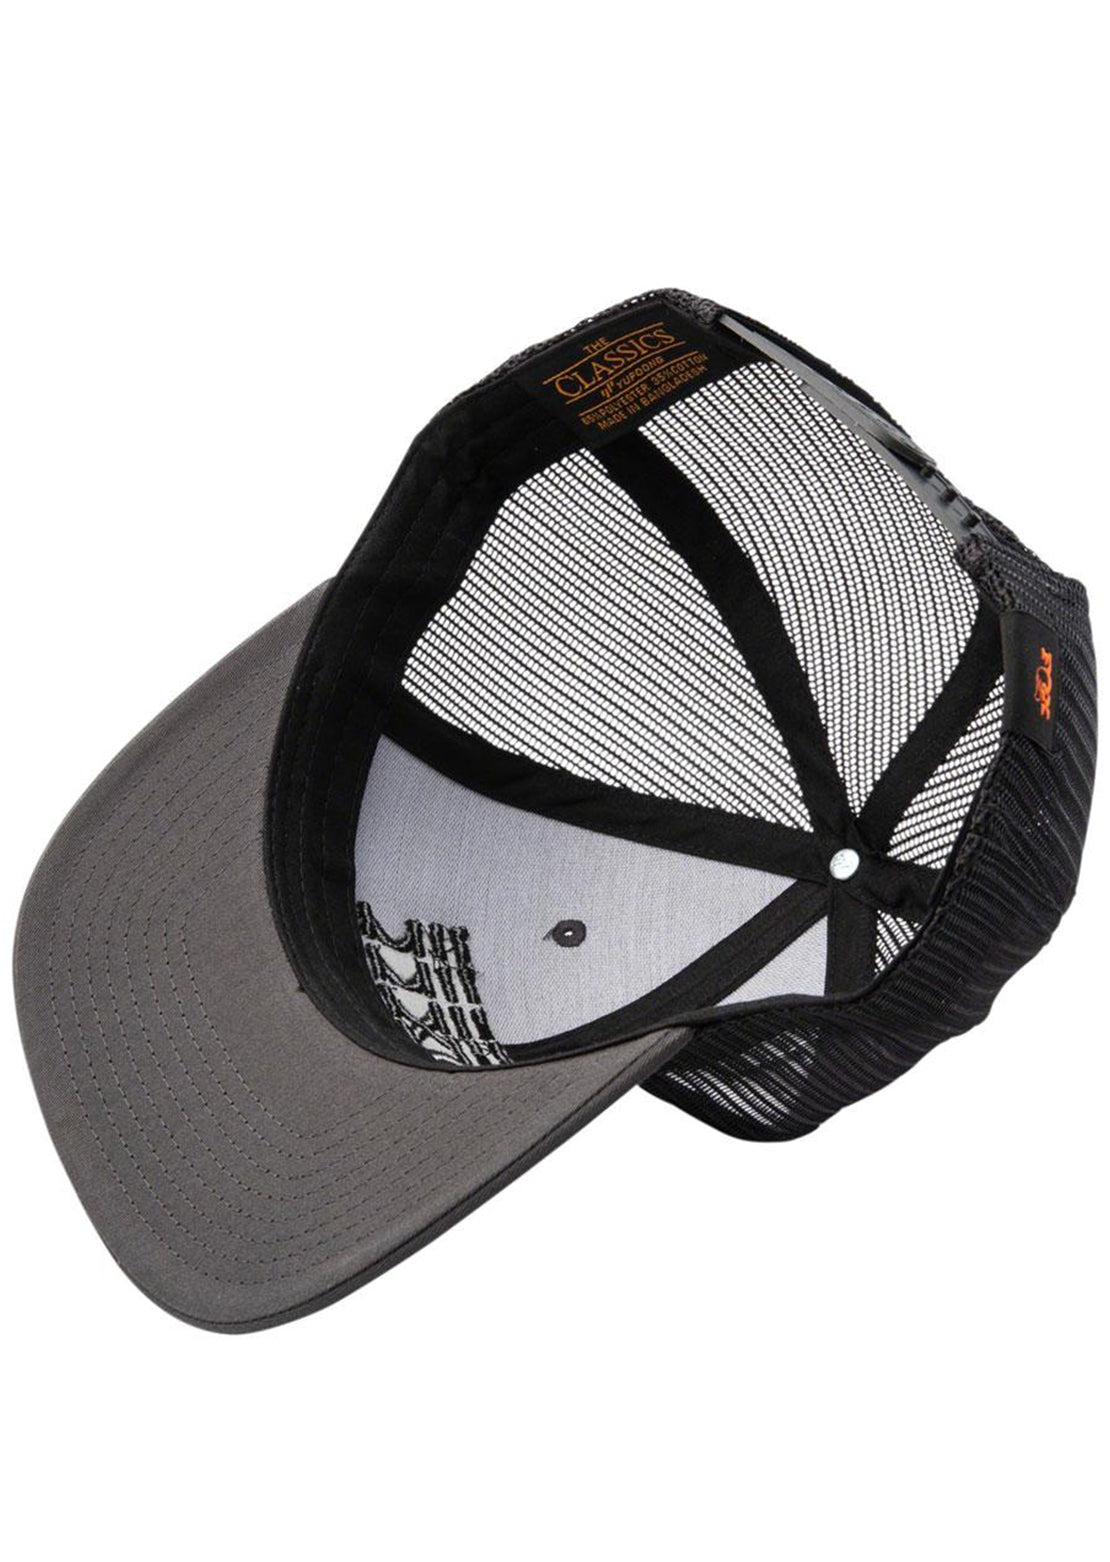 Fox Factory Stacked Flat Brim Trucker Cap Charcoal